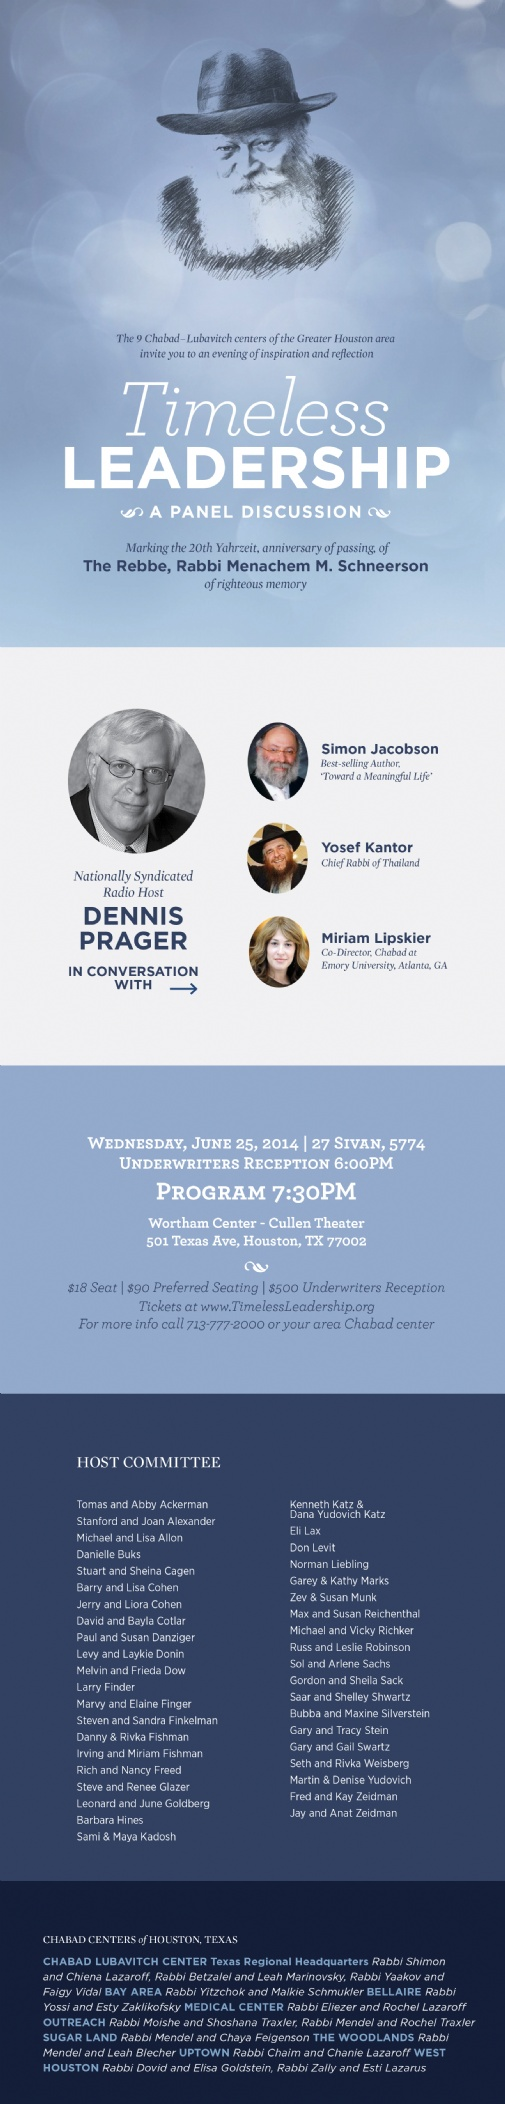 Gimmel Tammuz - 6-25-14 | Eve of inspiration and reflection with Radio Host Dennis Prager, Simon Jacobson, Yosef Kantor, Miriam Lipskier